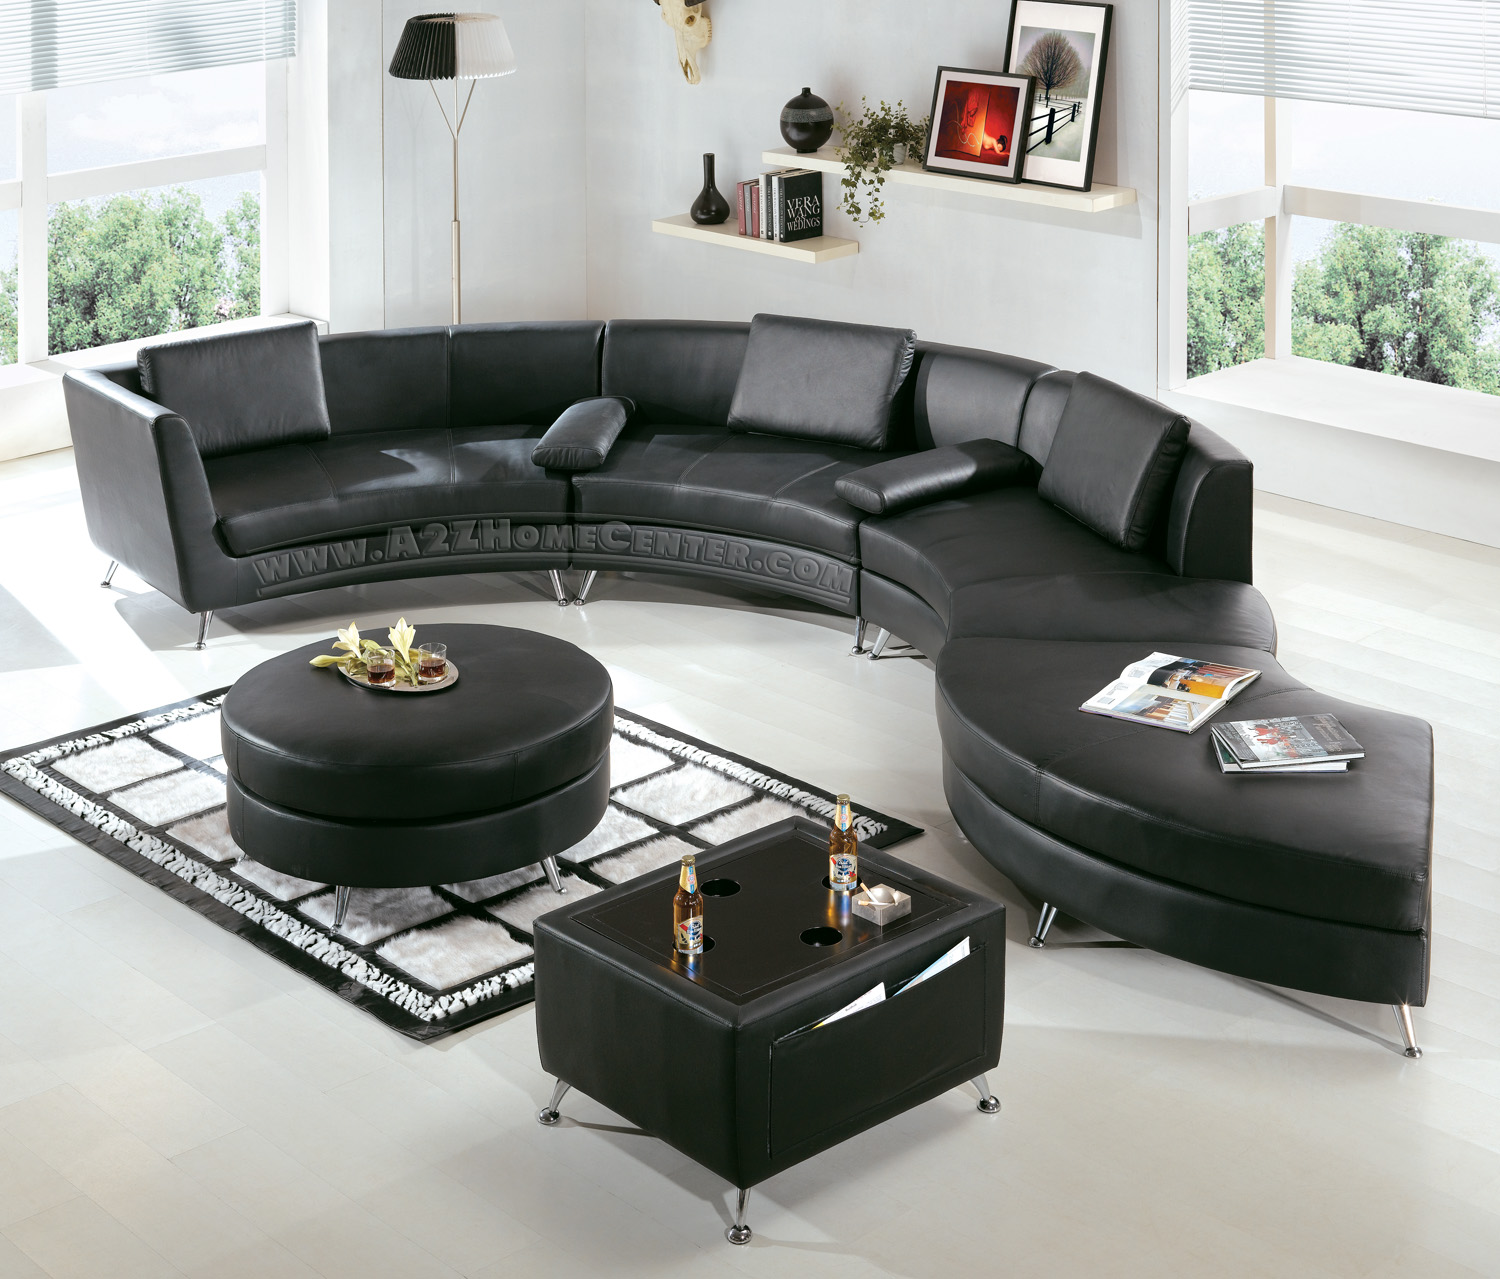 Trend home interior design 2011 modern furniture sofa for Interior designs sofa